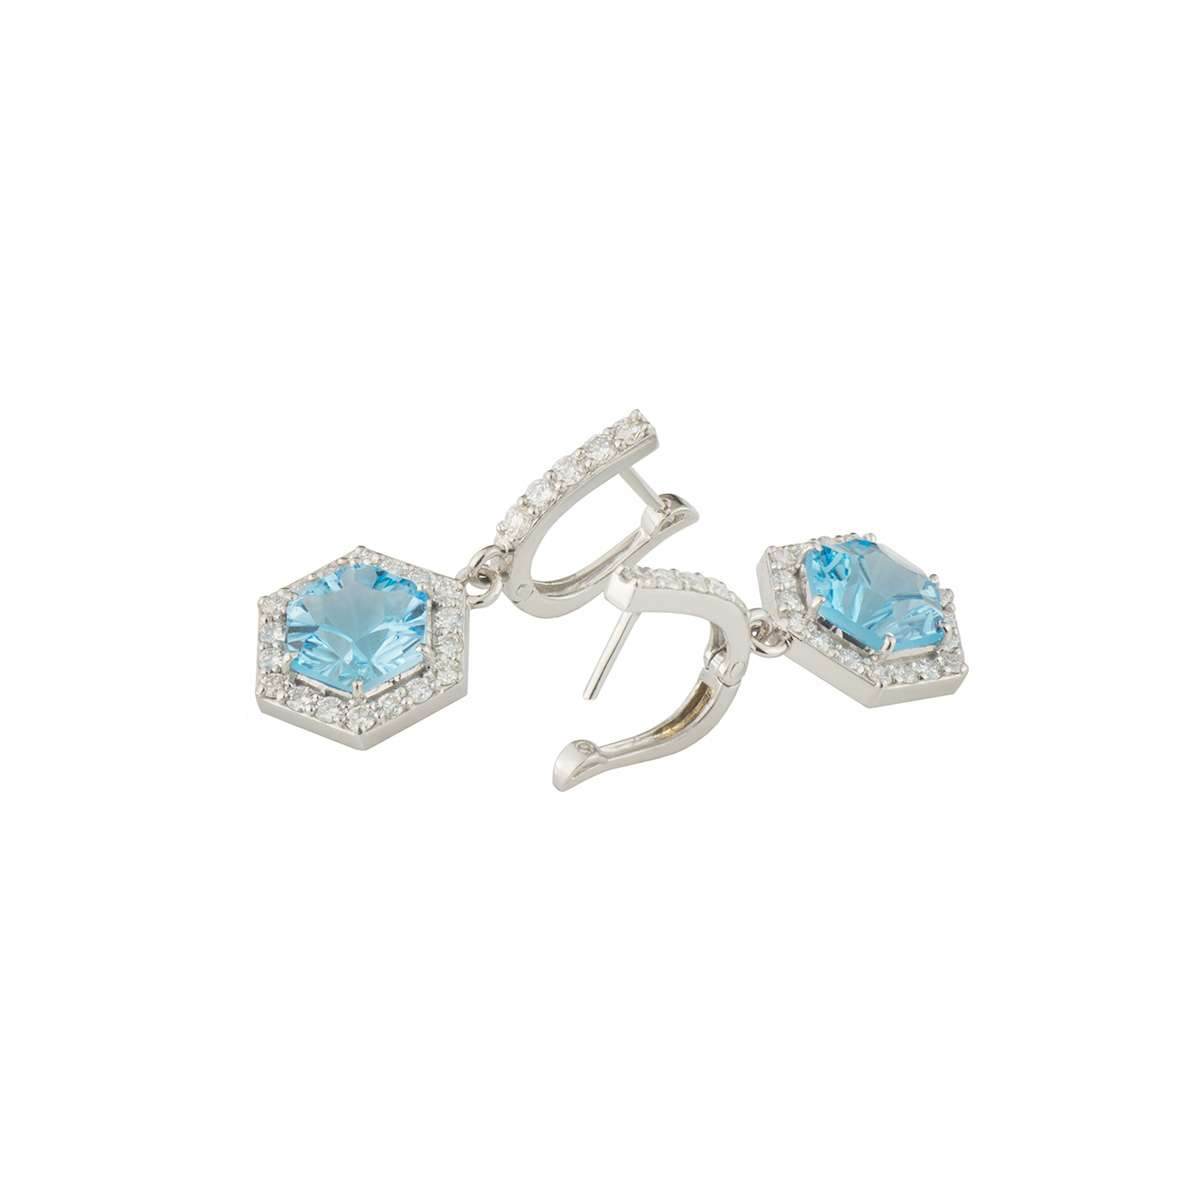 White Gold Diamond and Topaz Earrings